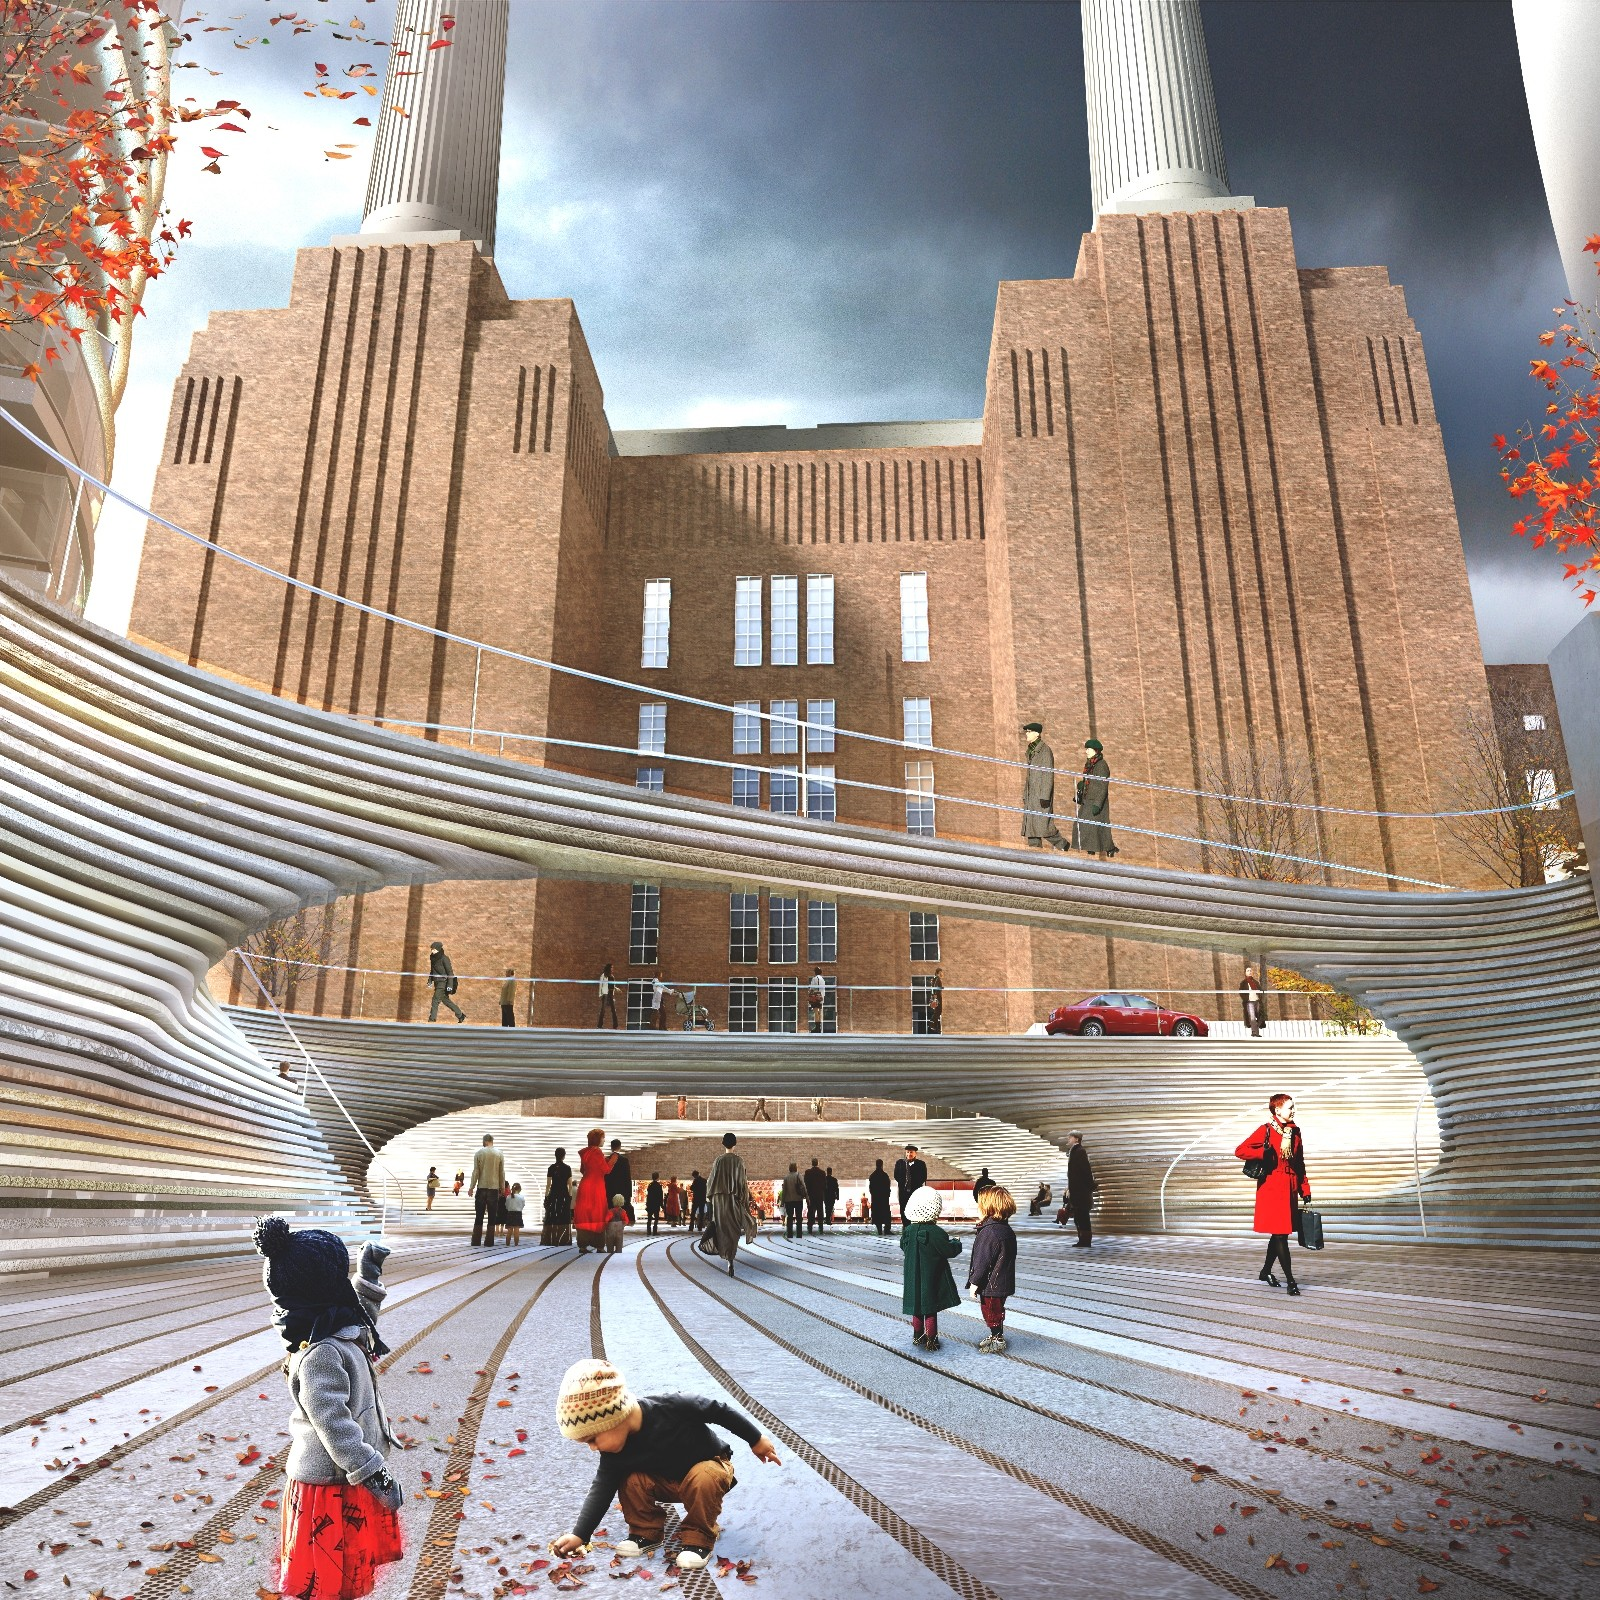 A civic square designed by BIG in Battersea Courtesy of Battersea Power Station Development Company